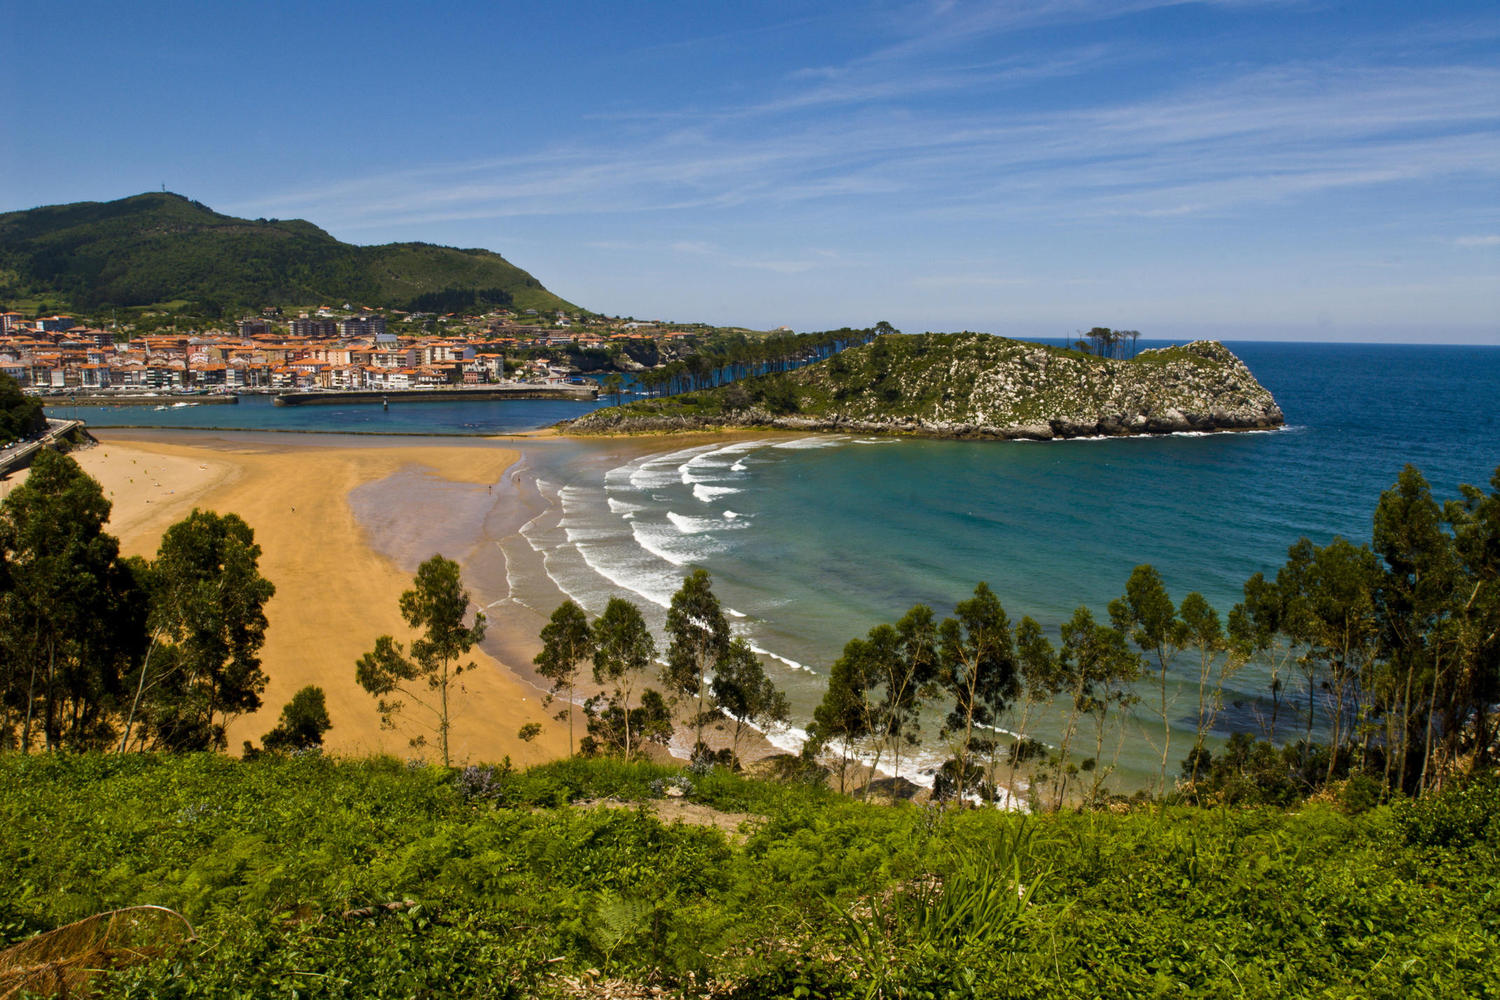 The beach and village of Lekeitio, Vizcaya